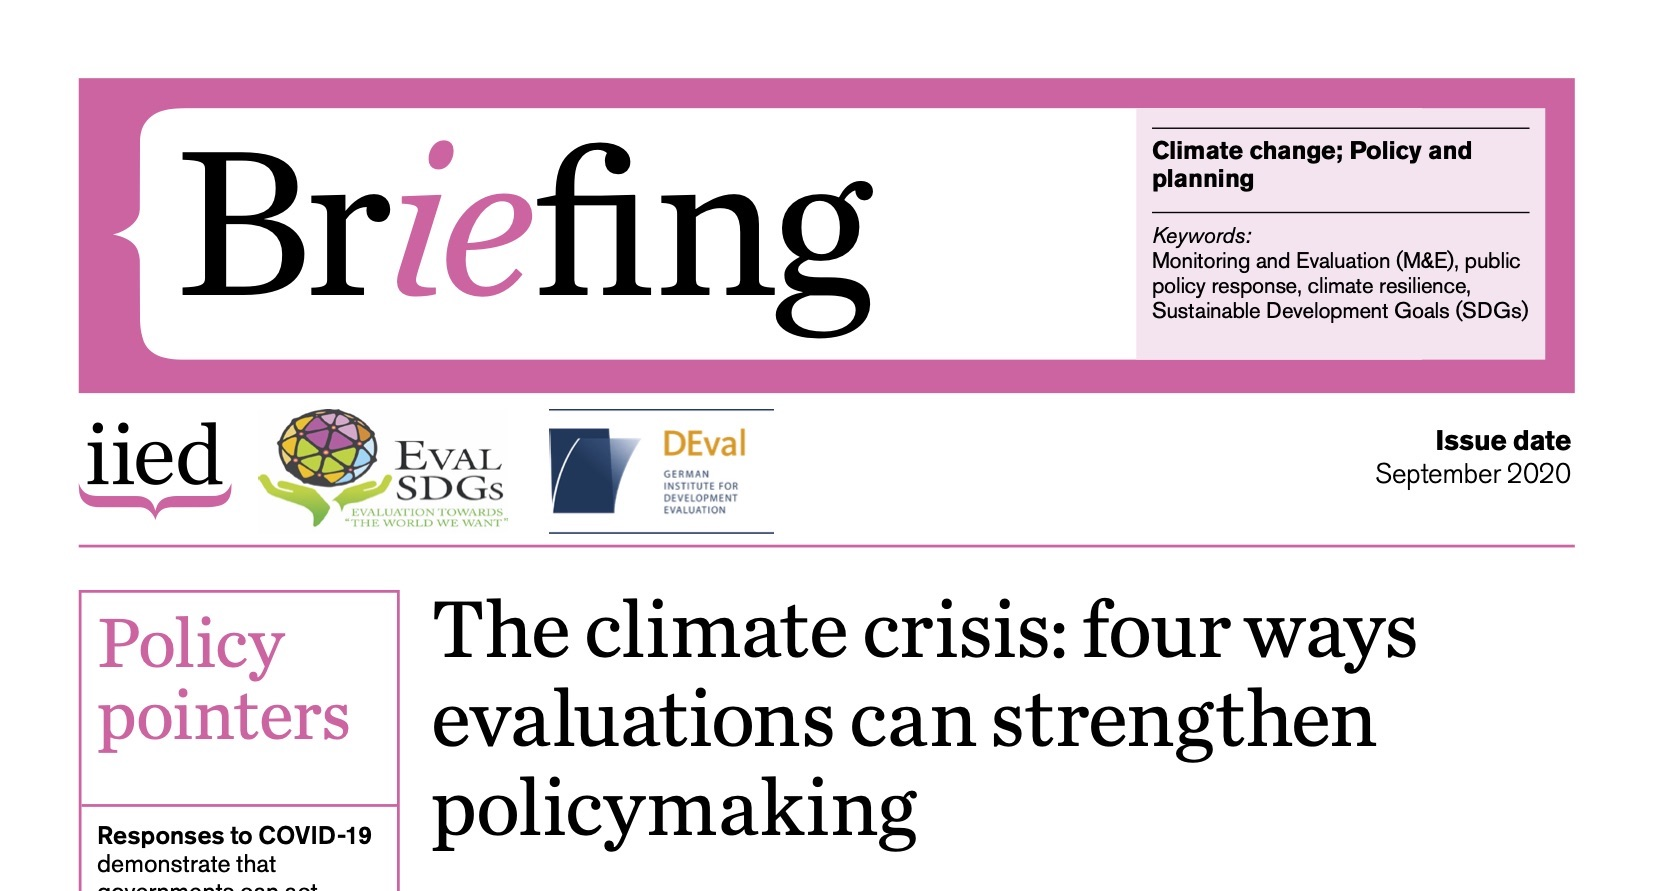 Briefing Paper 13 – The climate crisis: four ways evaluations can strengthen policymaking